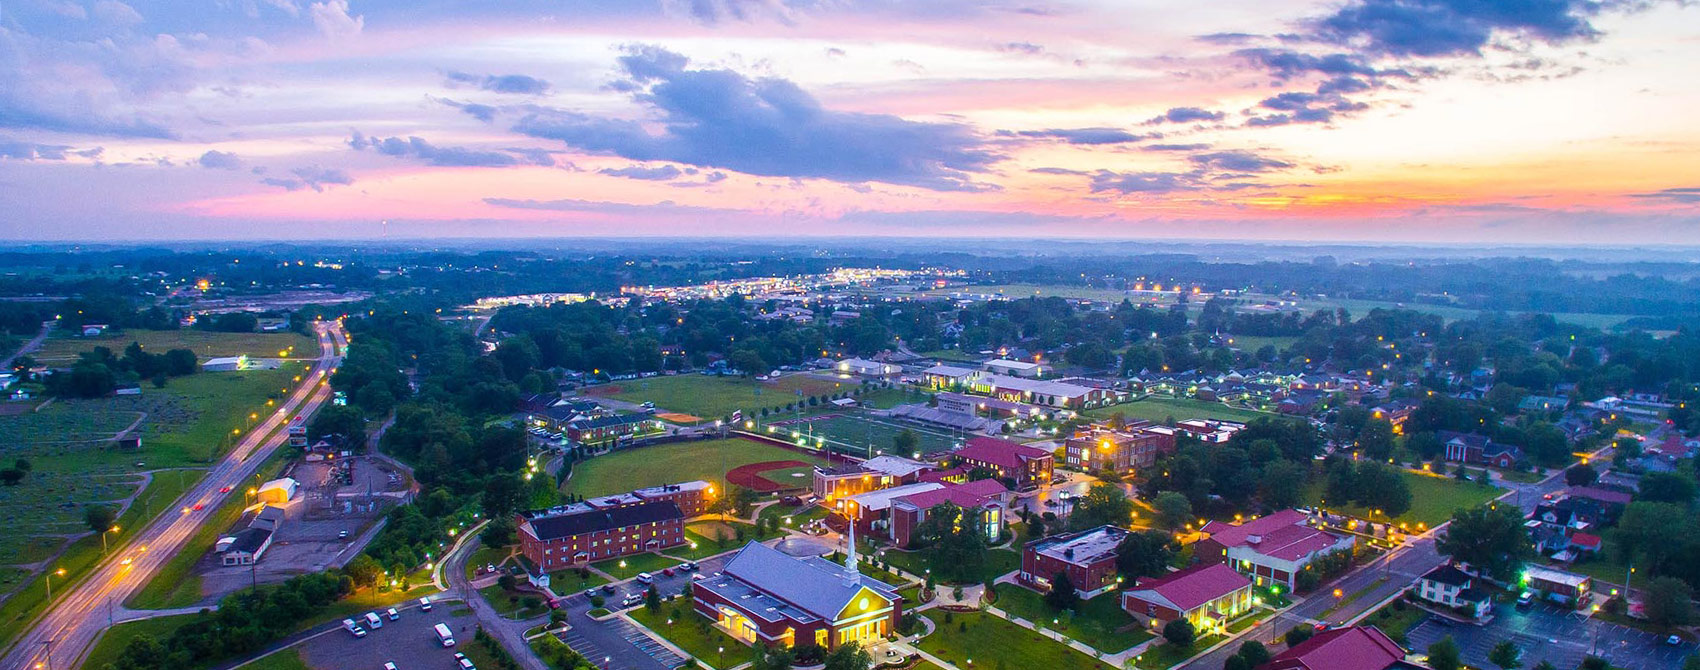 An arial photo of Campbellsville University's campus at dusk and the nearby busy road.